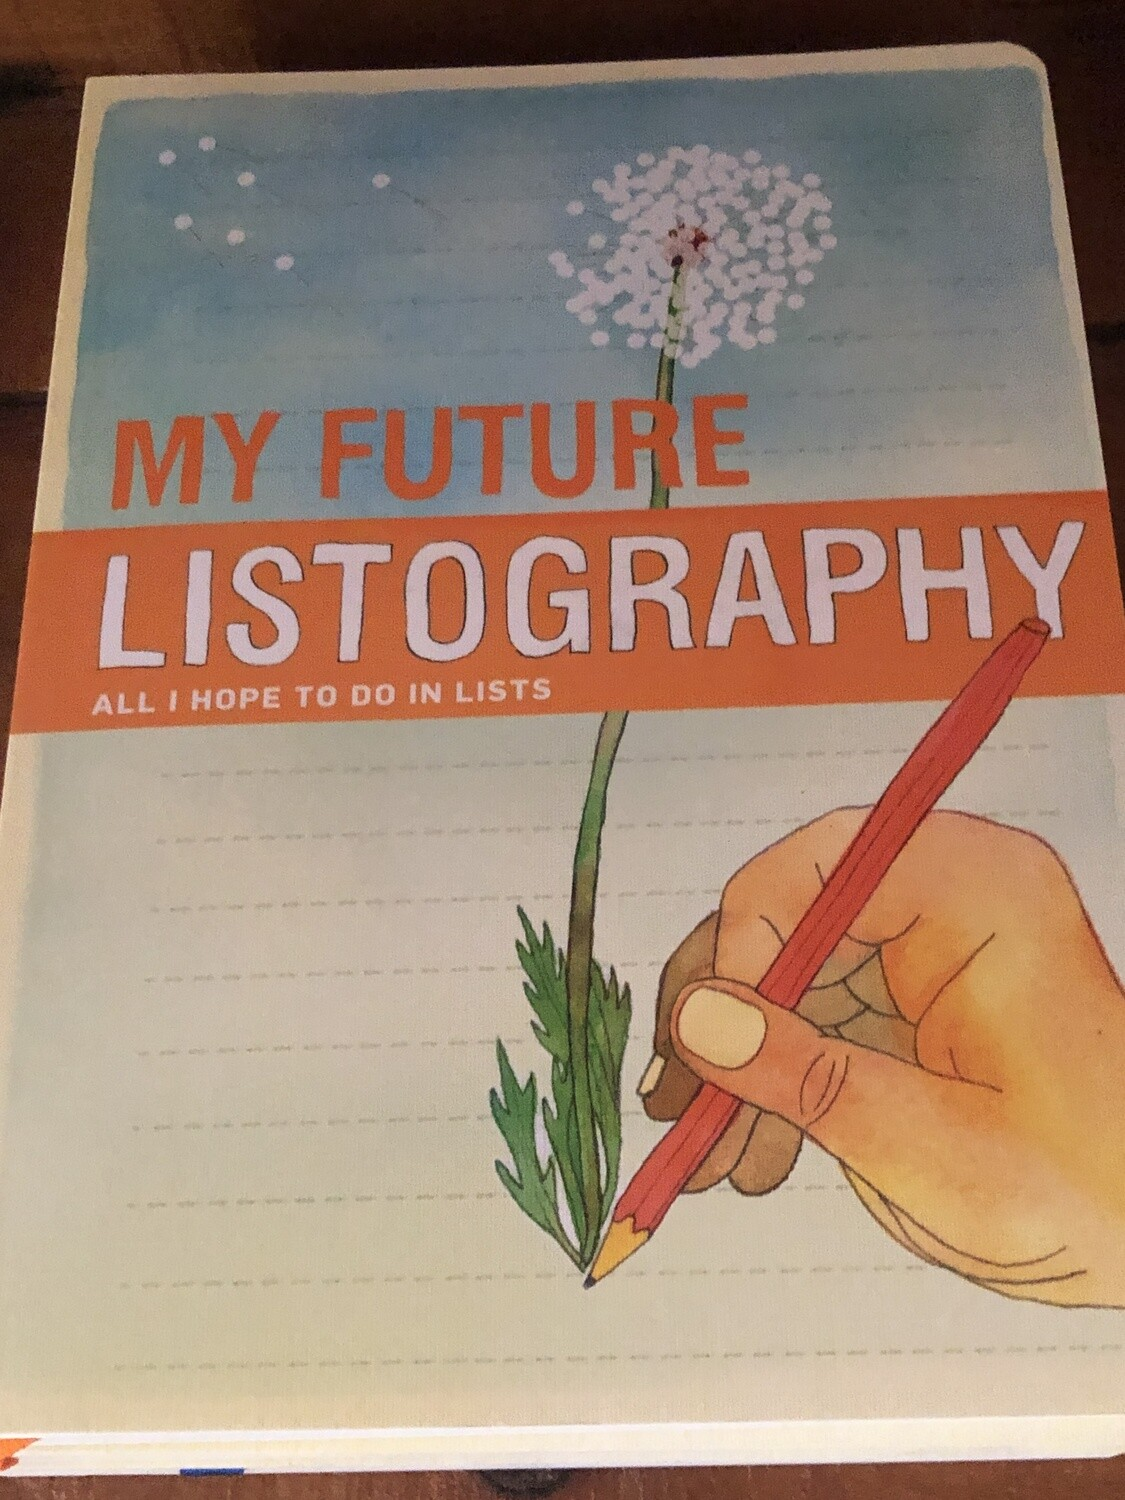 My Future, Listography